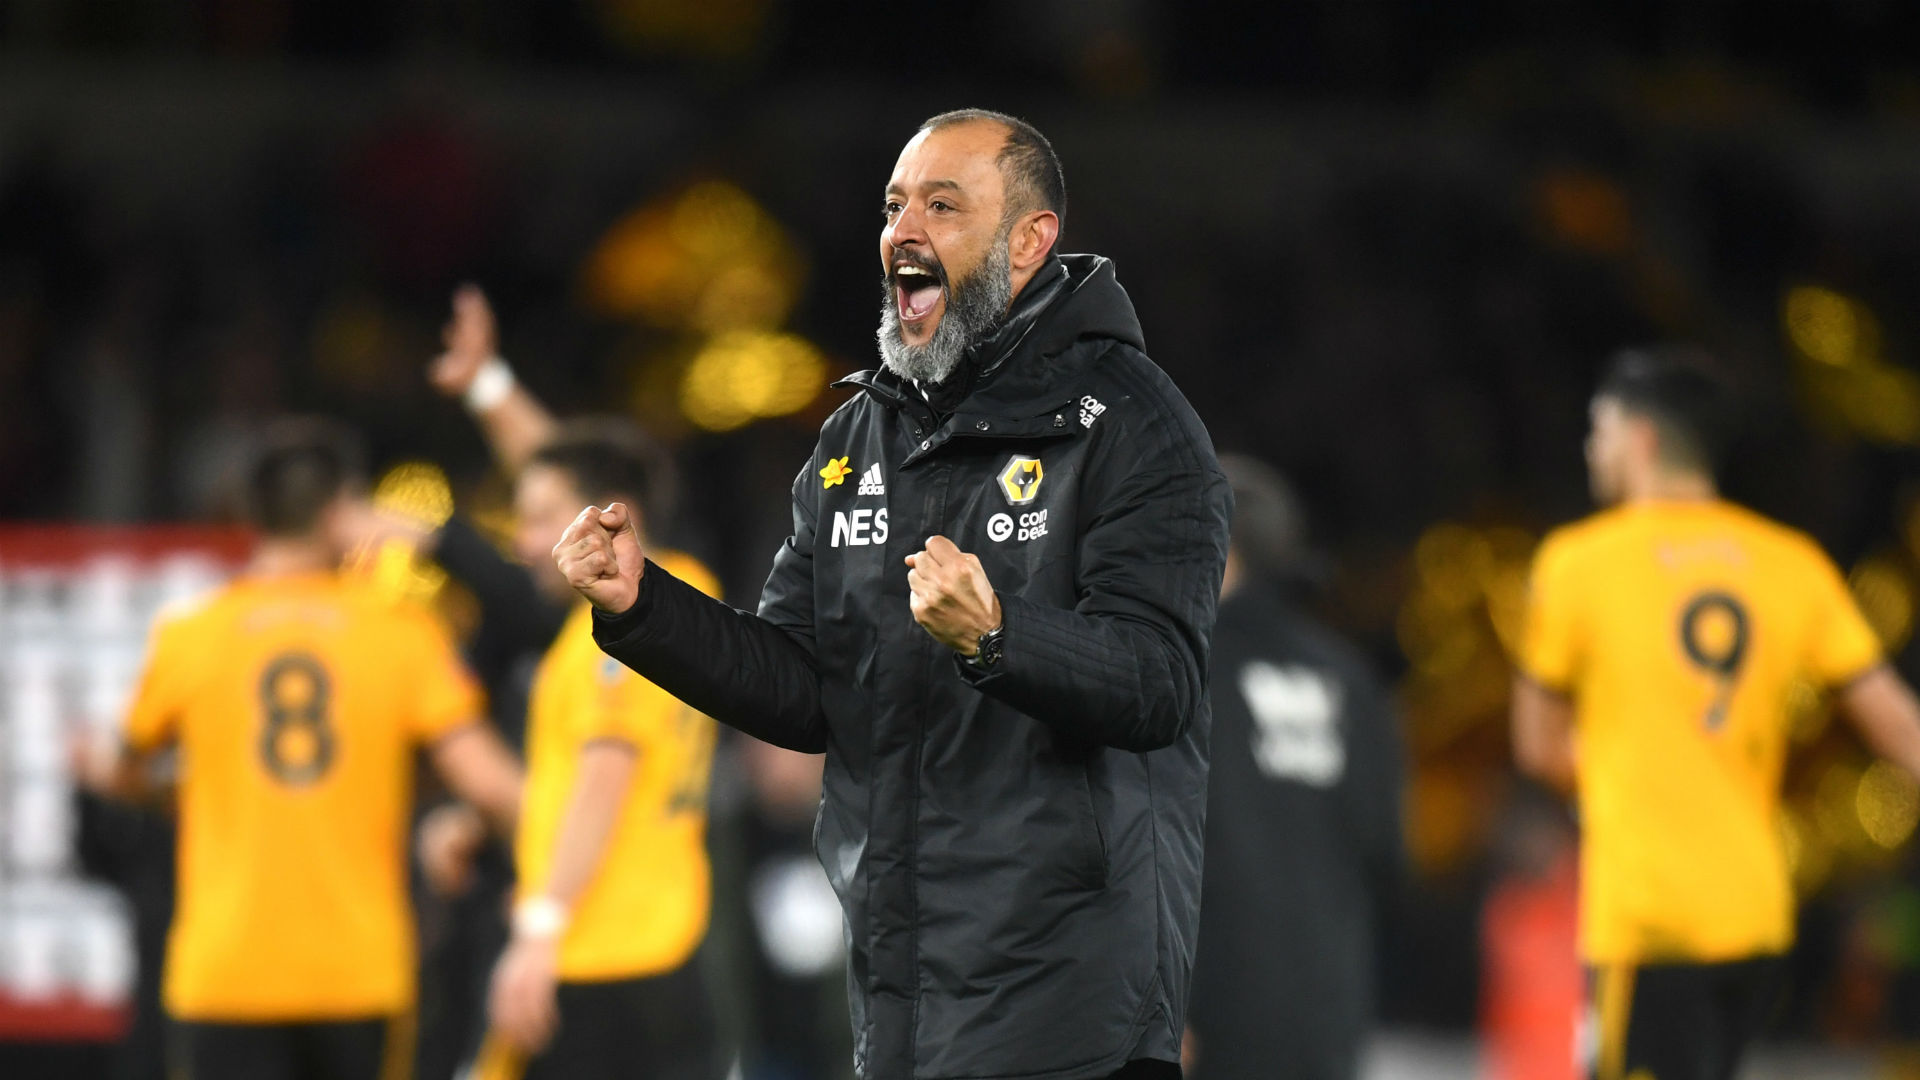 Nuno delighted to take Wolves back to glory days